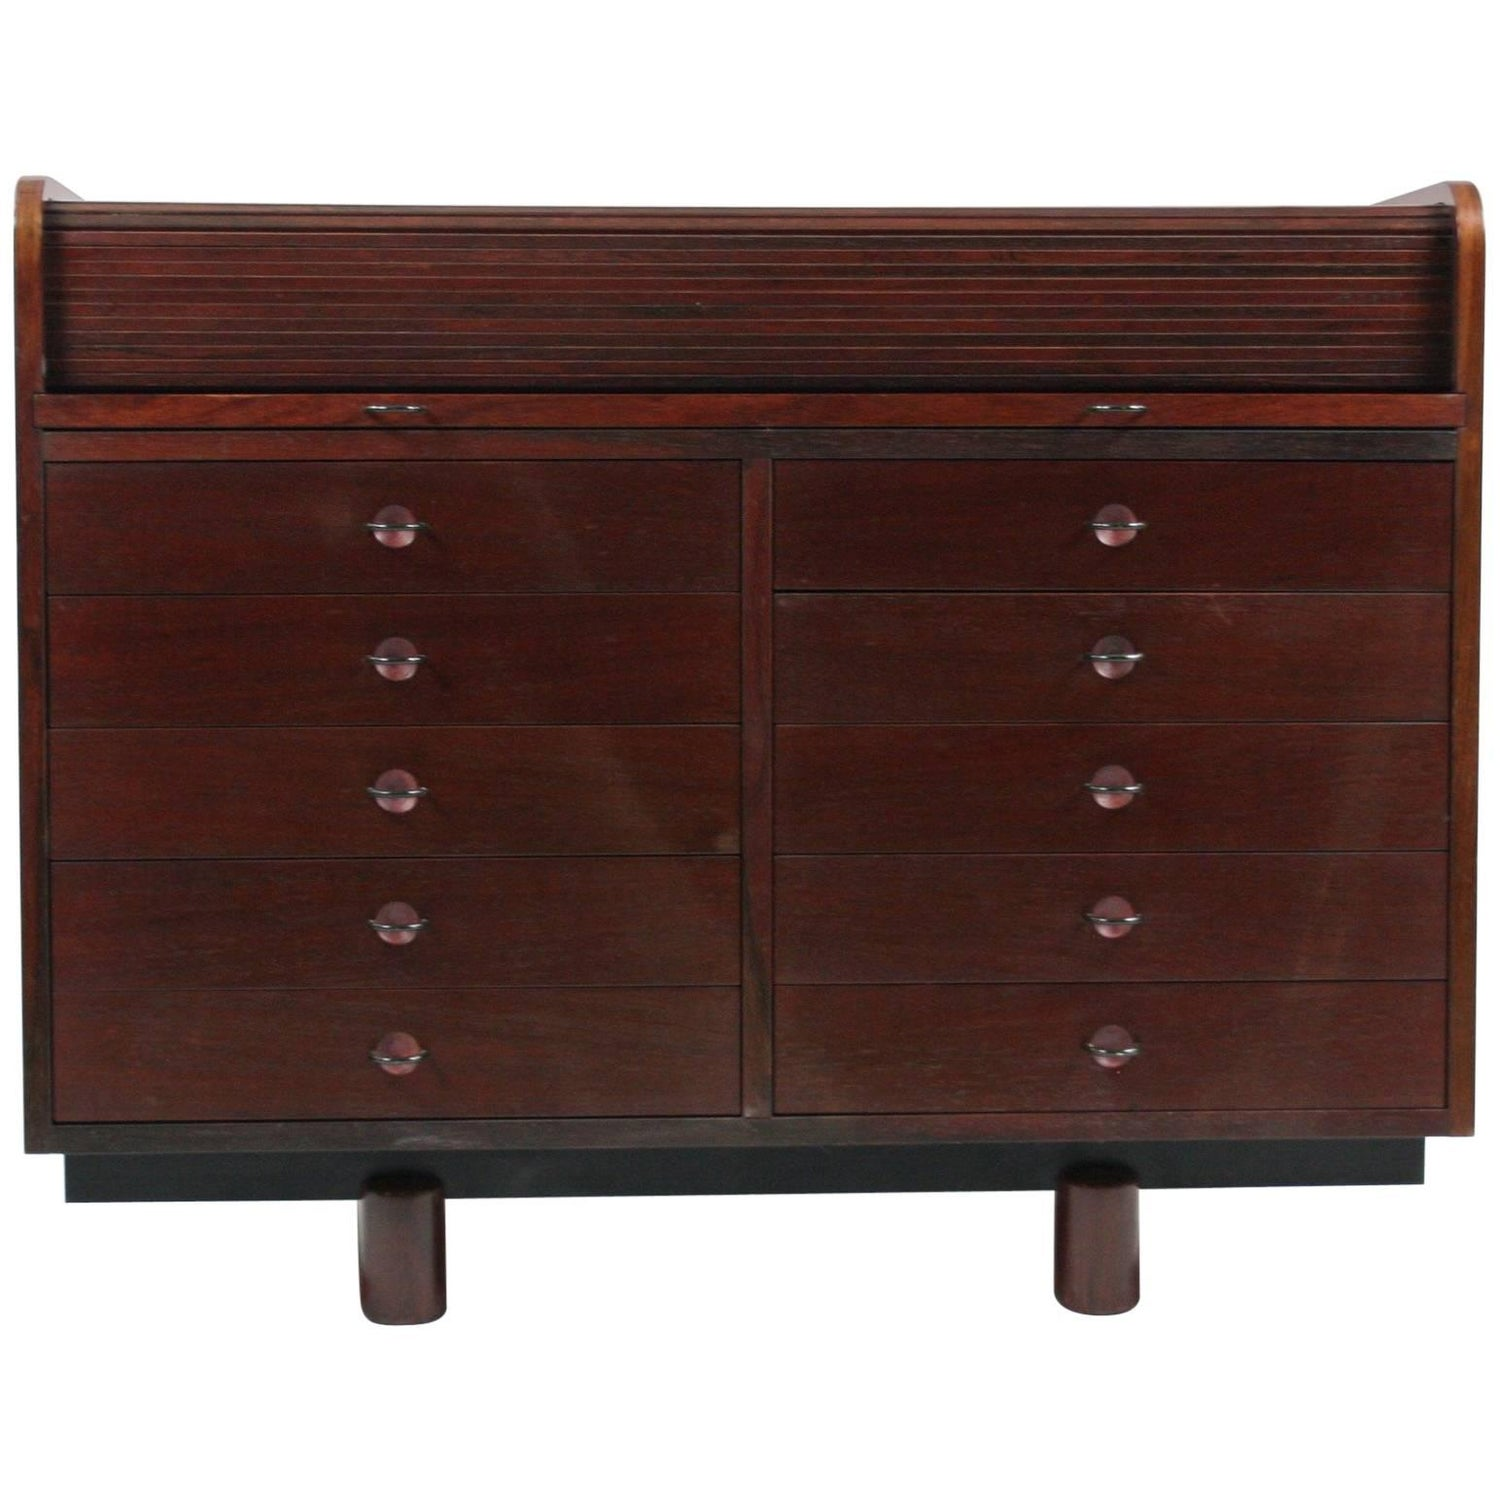 Gianfranco Frattini Desk with Roll Top in Rosewood, circa 1962 for Bernini  Italy - Antique And Vintage Secretaires - 1,328 For Sale At 1stdibs